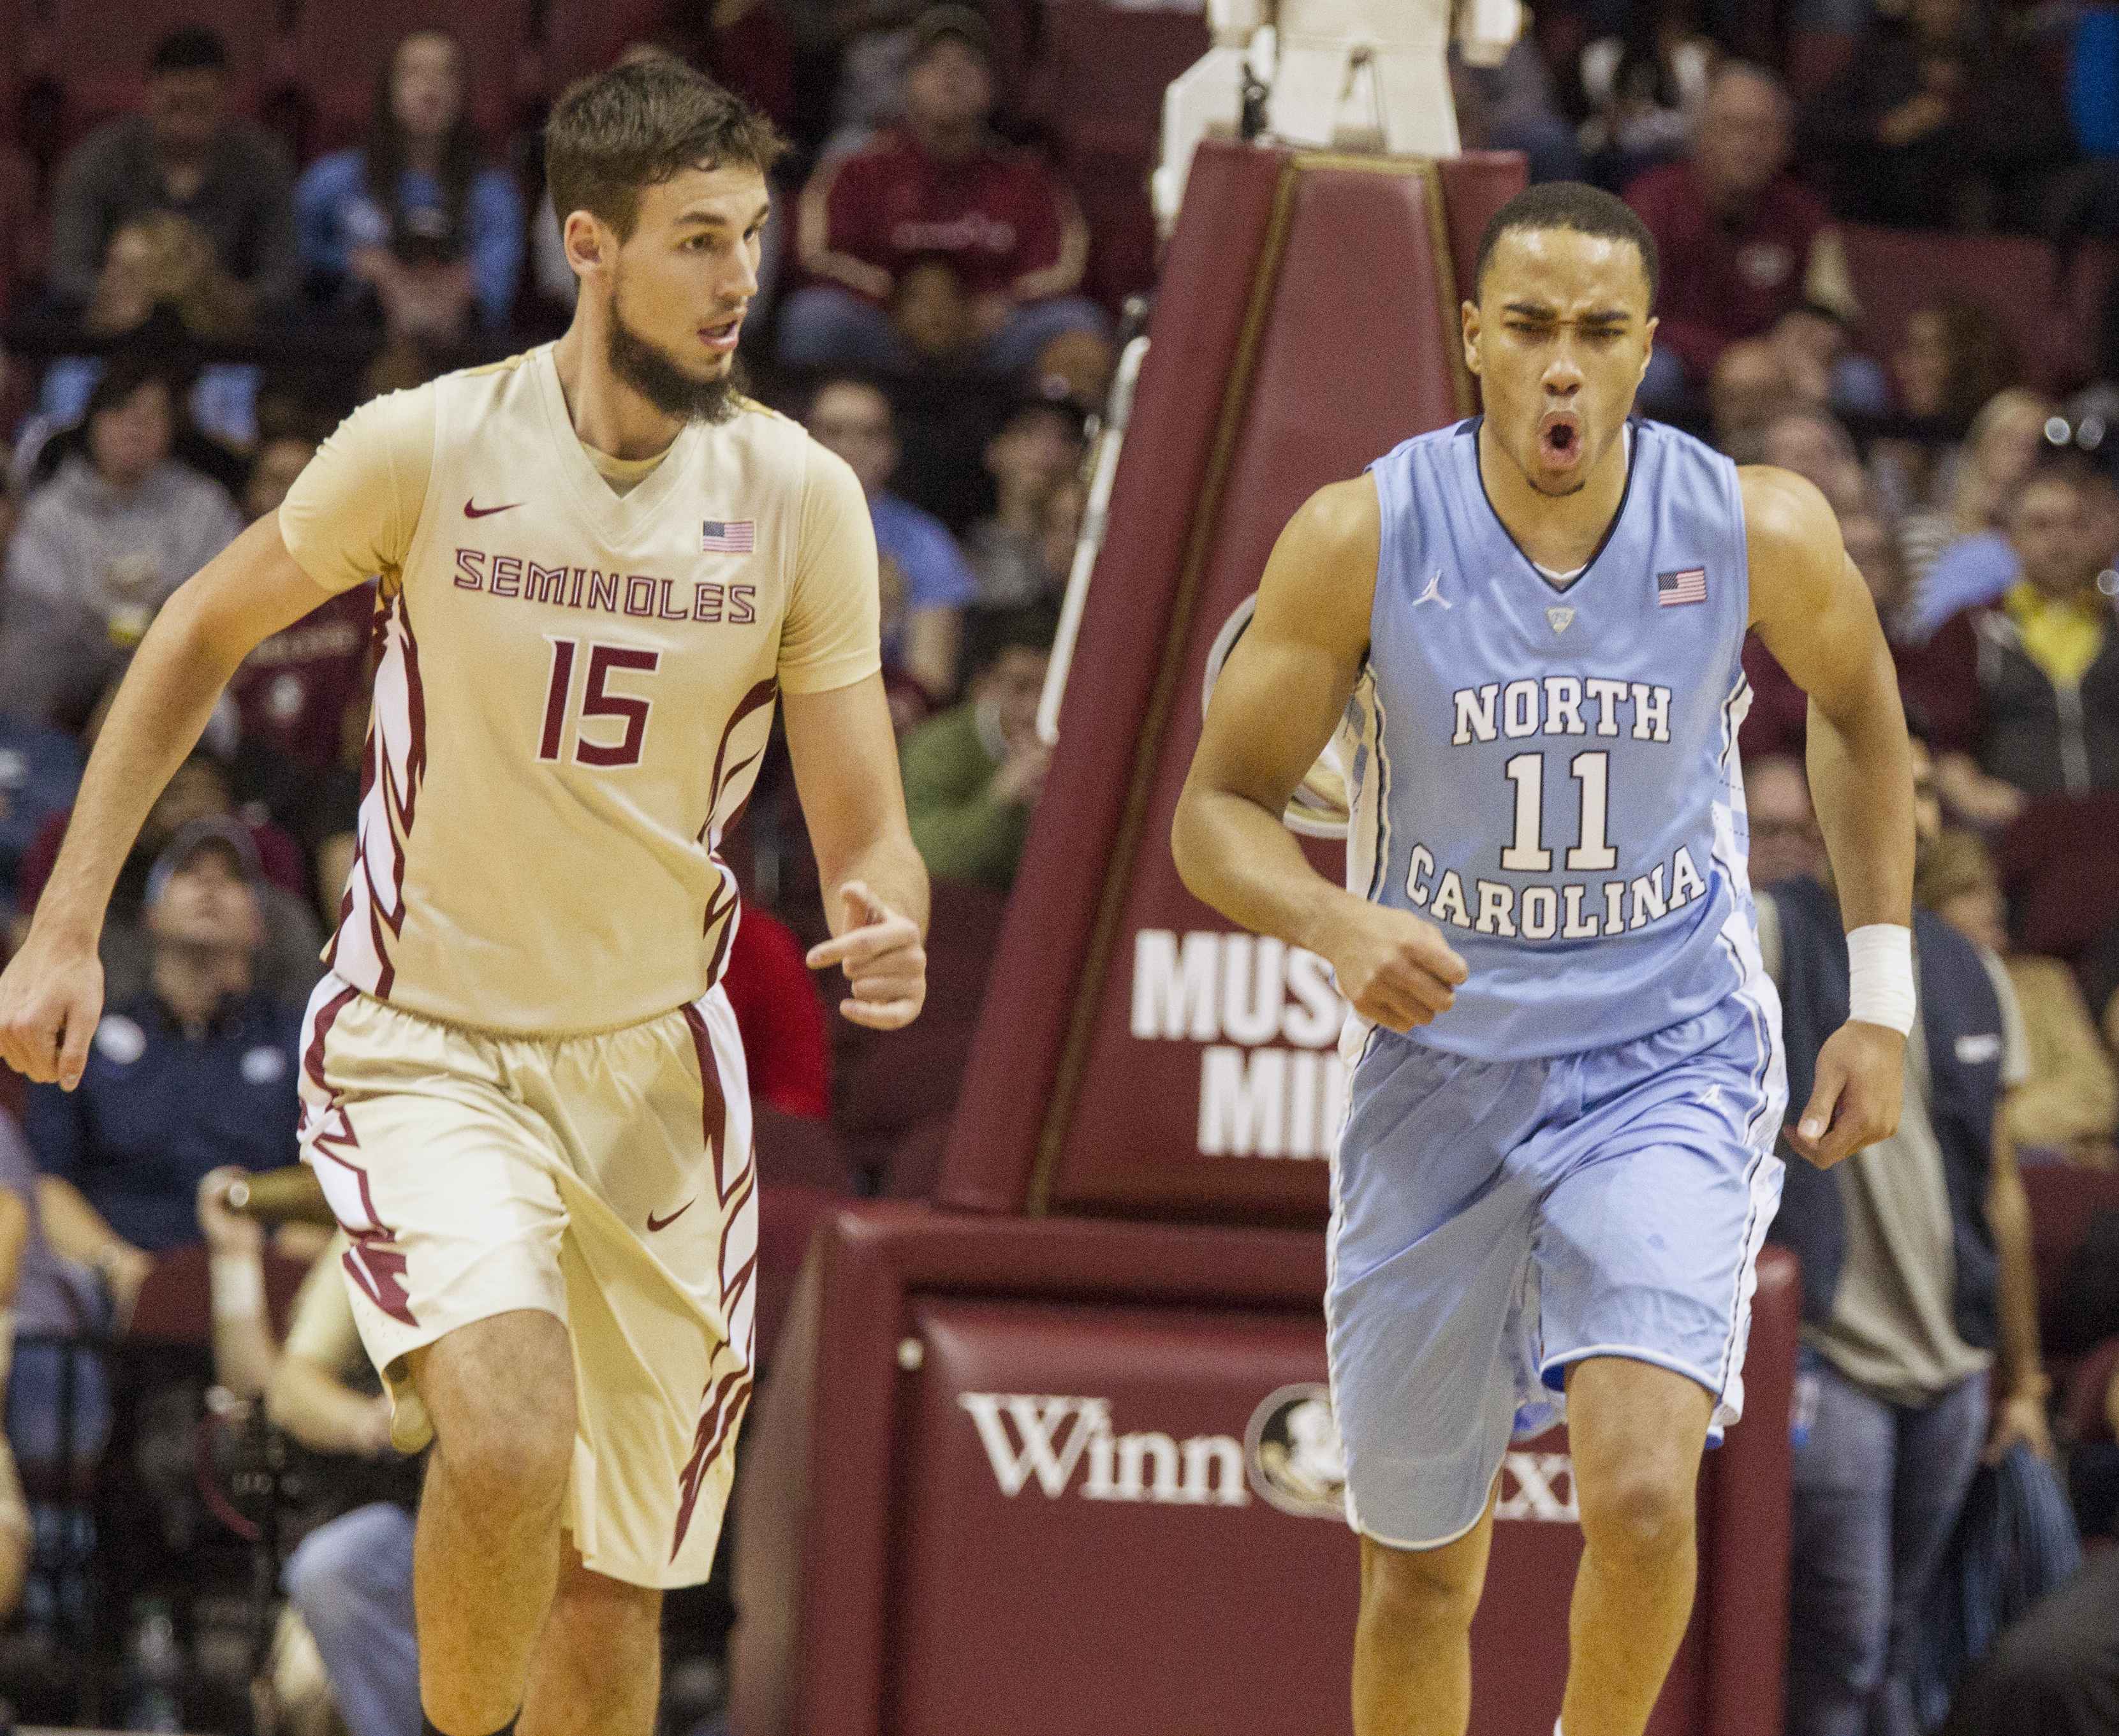 North Carolina forward Brice Johnson, right, reacts after dunking over Florida State center Boris Bojanovsky in the first half of an NCAA college basketball game in Tallahassee, Fla., Monday, Jan. 4, 2016. (AP Photo/Mark Wallheiser)